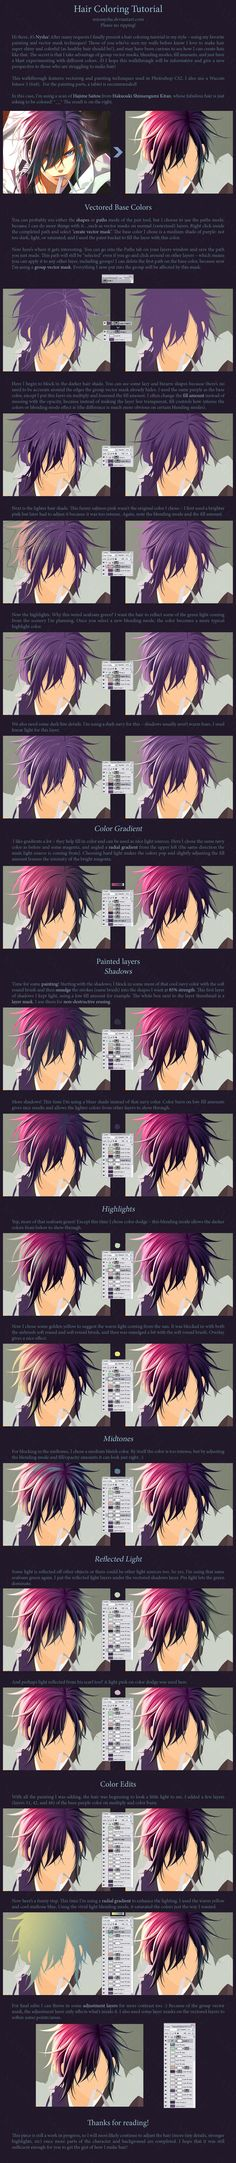 Hair Coloring Tutorial by MissNysha.deviantart.com on @deviantART